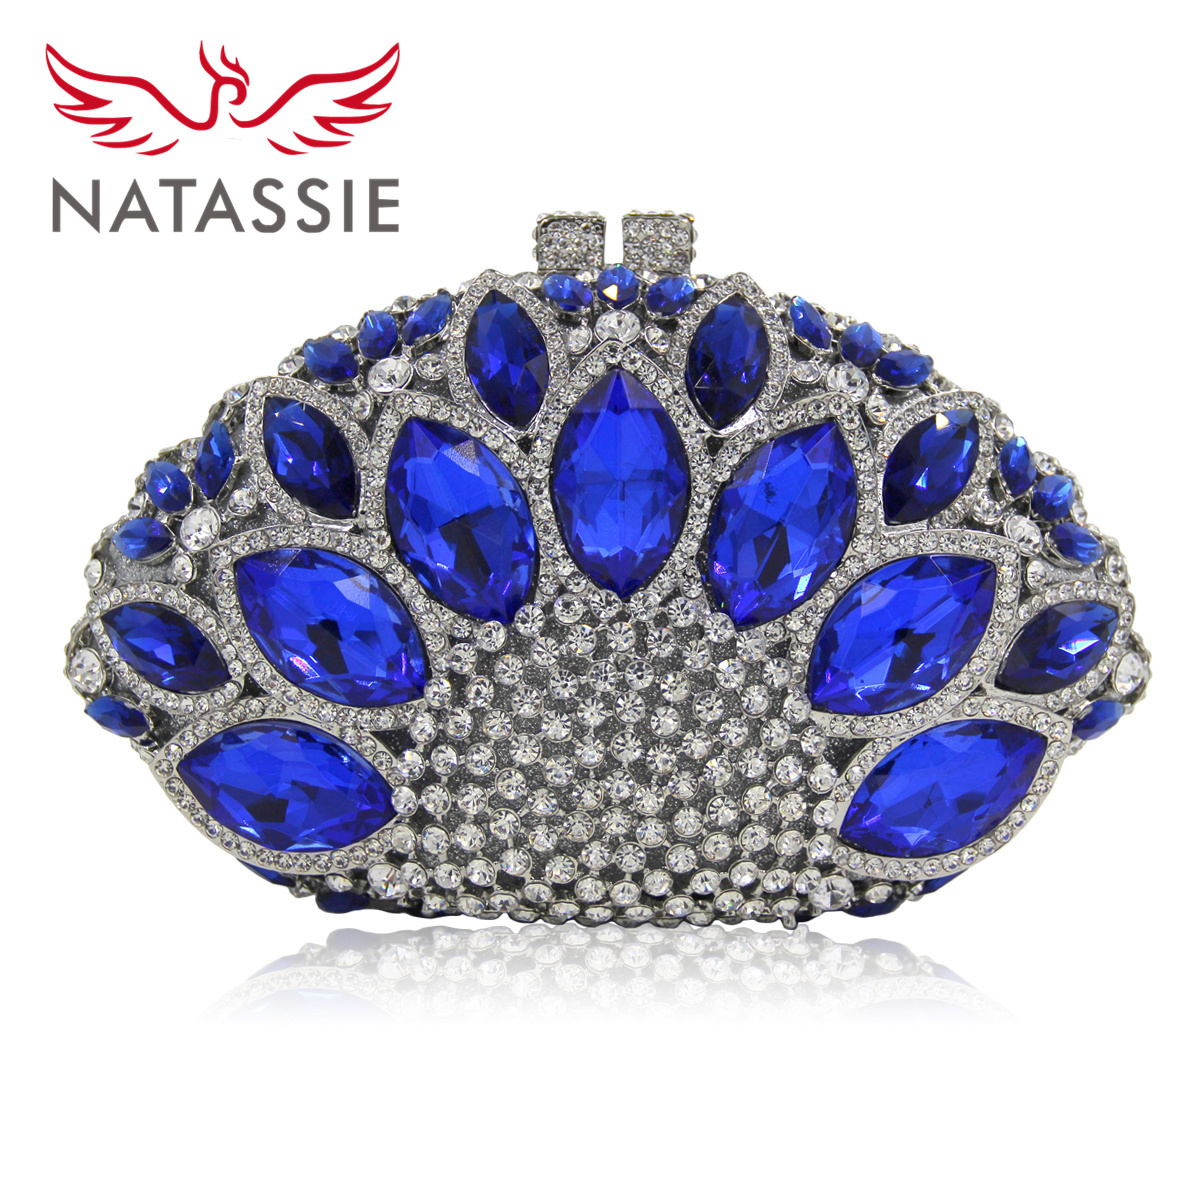 NATASSIE Women Blue Clutch Bags Ladies Silver Evening Bag Party Clutches Female Wedding Purses colourful bird women evening luxury bags crystal clutches laides evening bag female party hard case bags wedding clutch purses